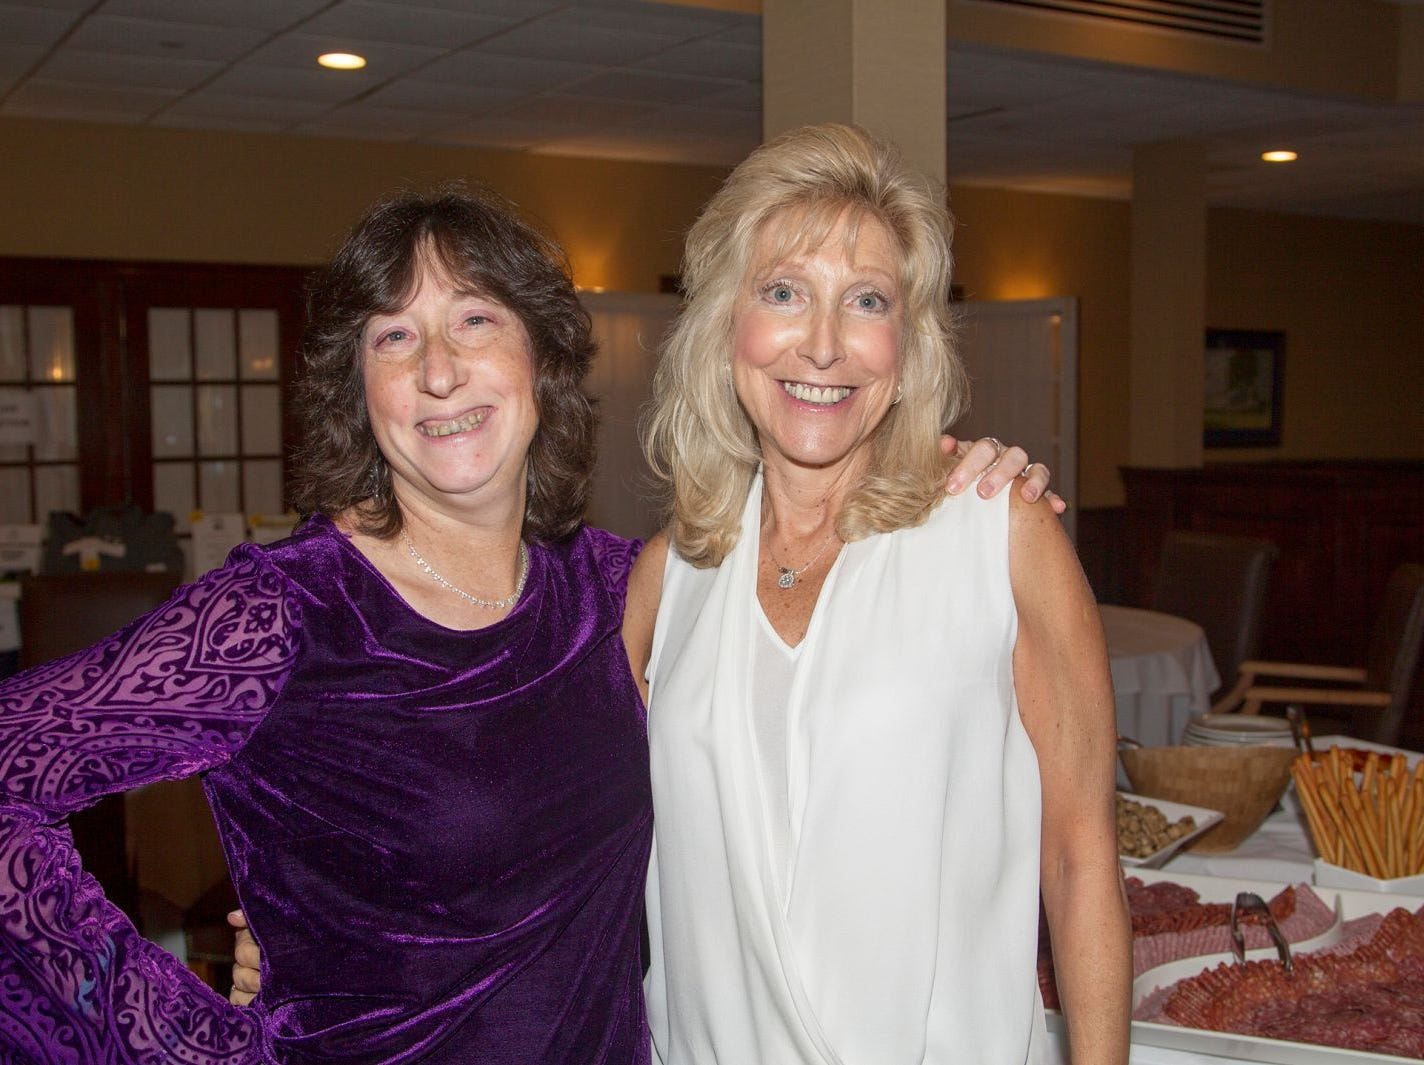 Jeanne Buesser, Ronni Rantzer. Ken's Krew Golf Outing at White Beeches Country Club in Haworth. Ken's Krew provides vocational training and job placement services for young adults with intellectual and developmental disabilities. 10/09/2018